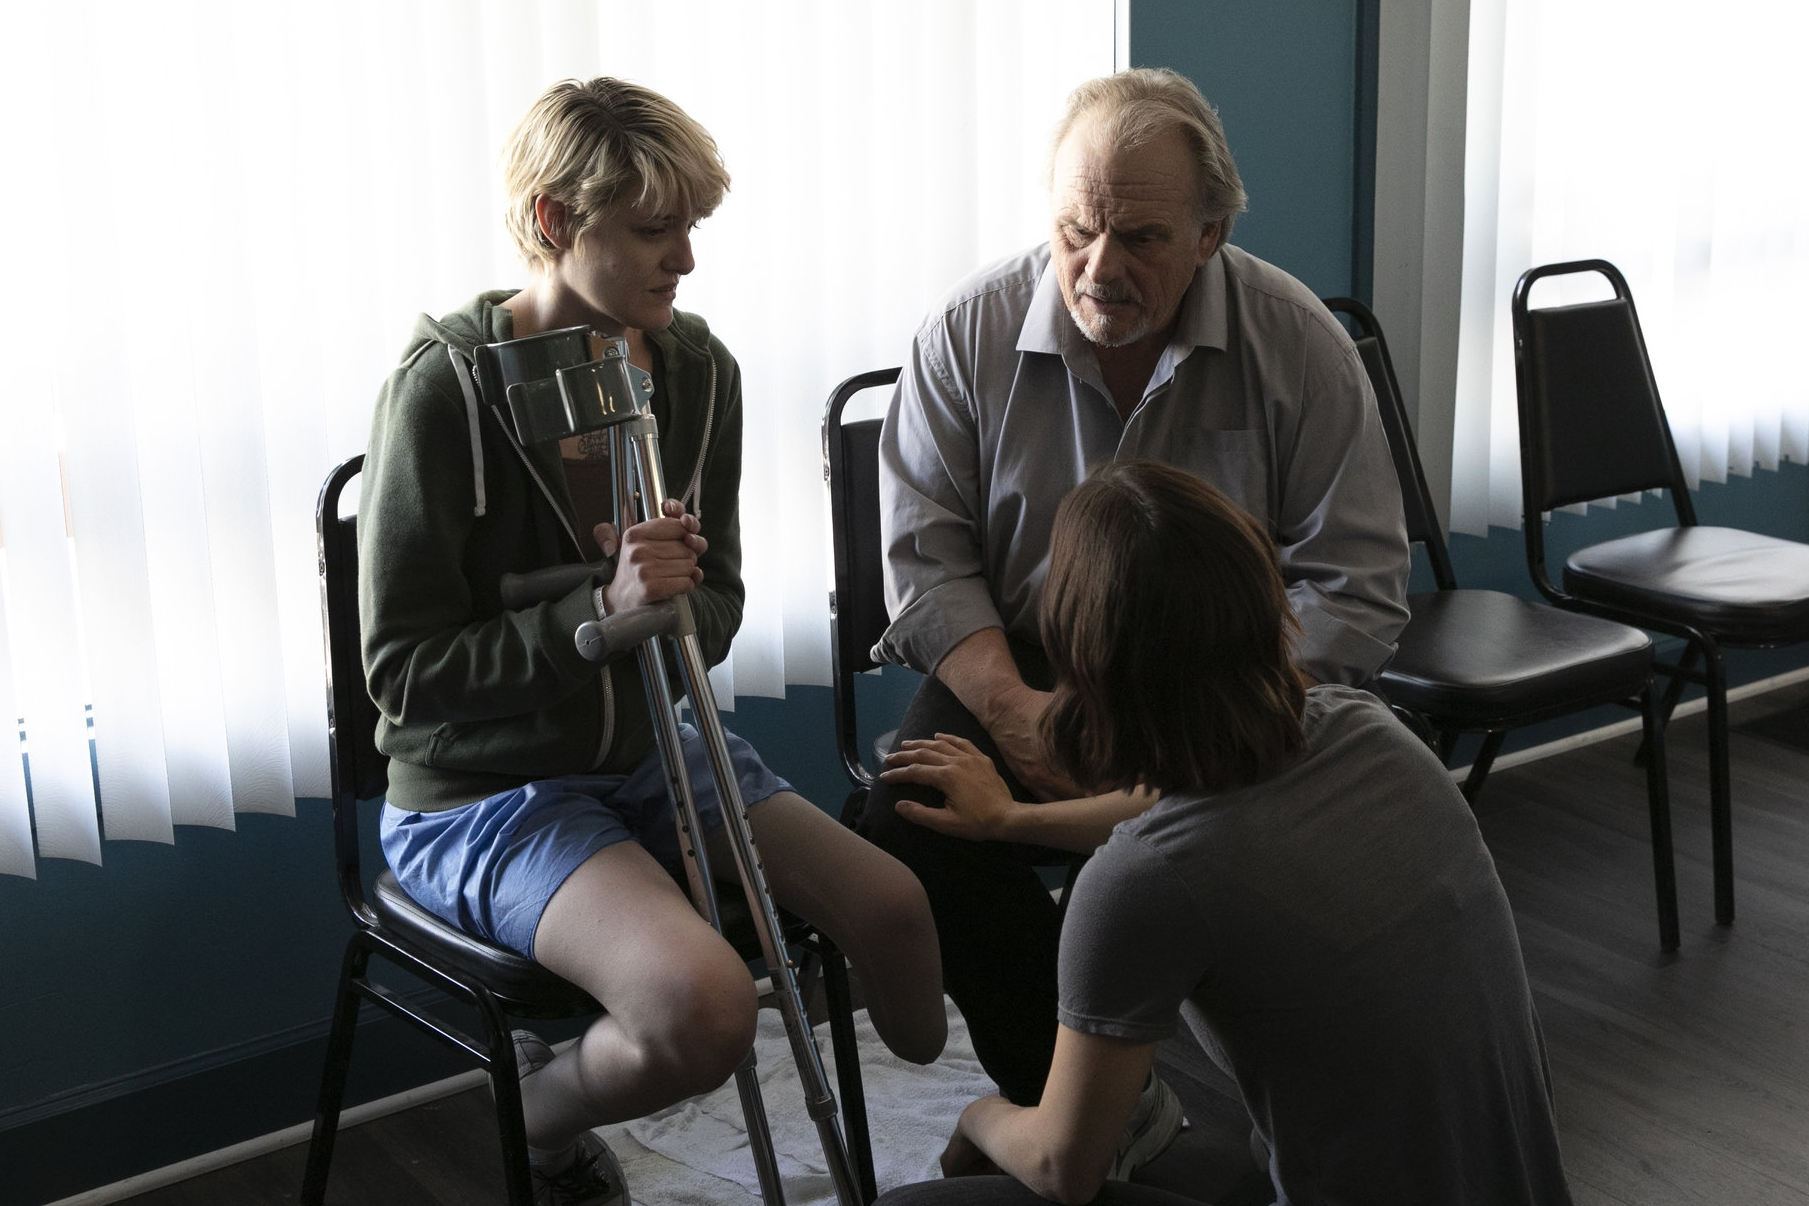 Katherine Kampo (Young Vet) and Robert Craighead discussing the upcoming scene with the director.